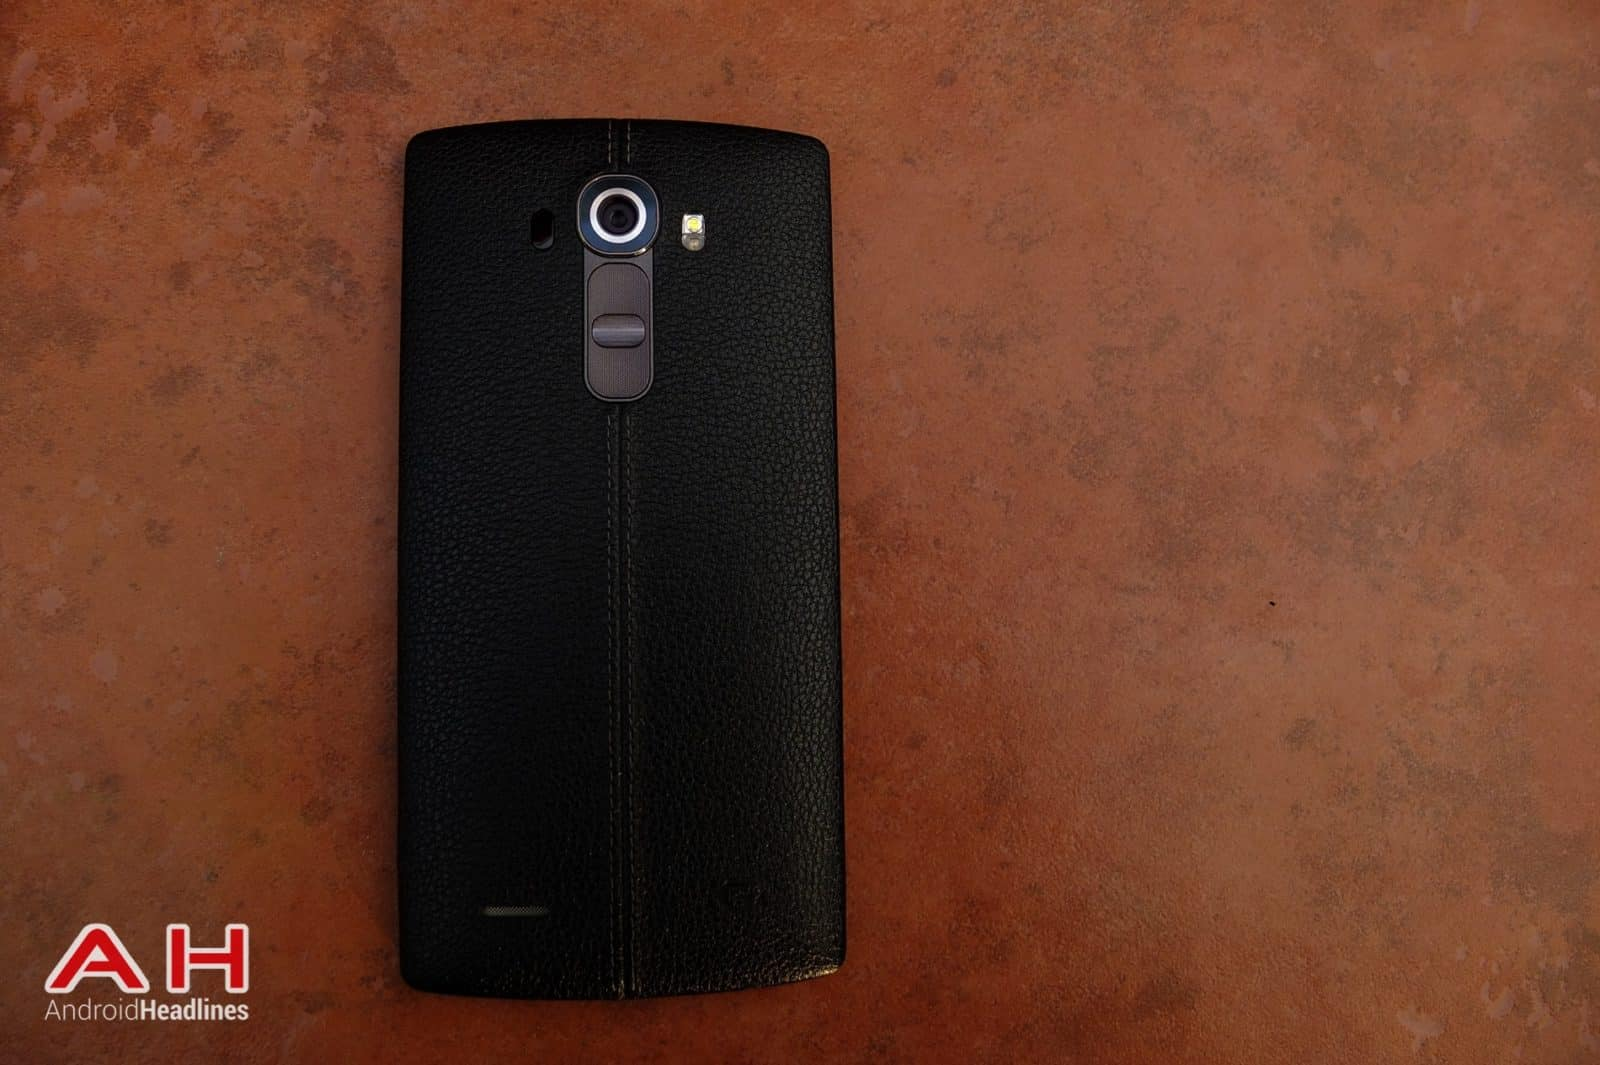 LG G4 BlackLeather TD AH 01